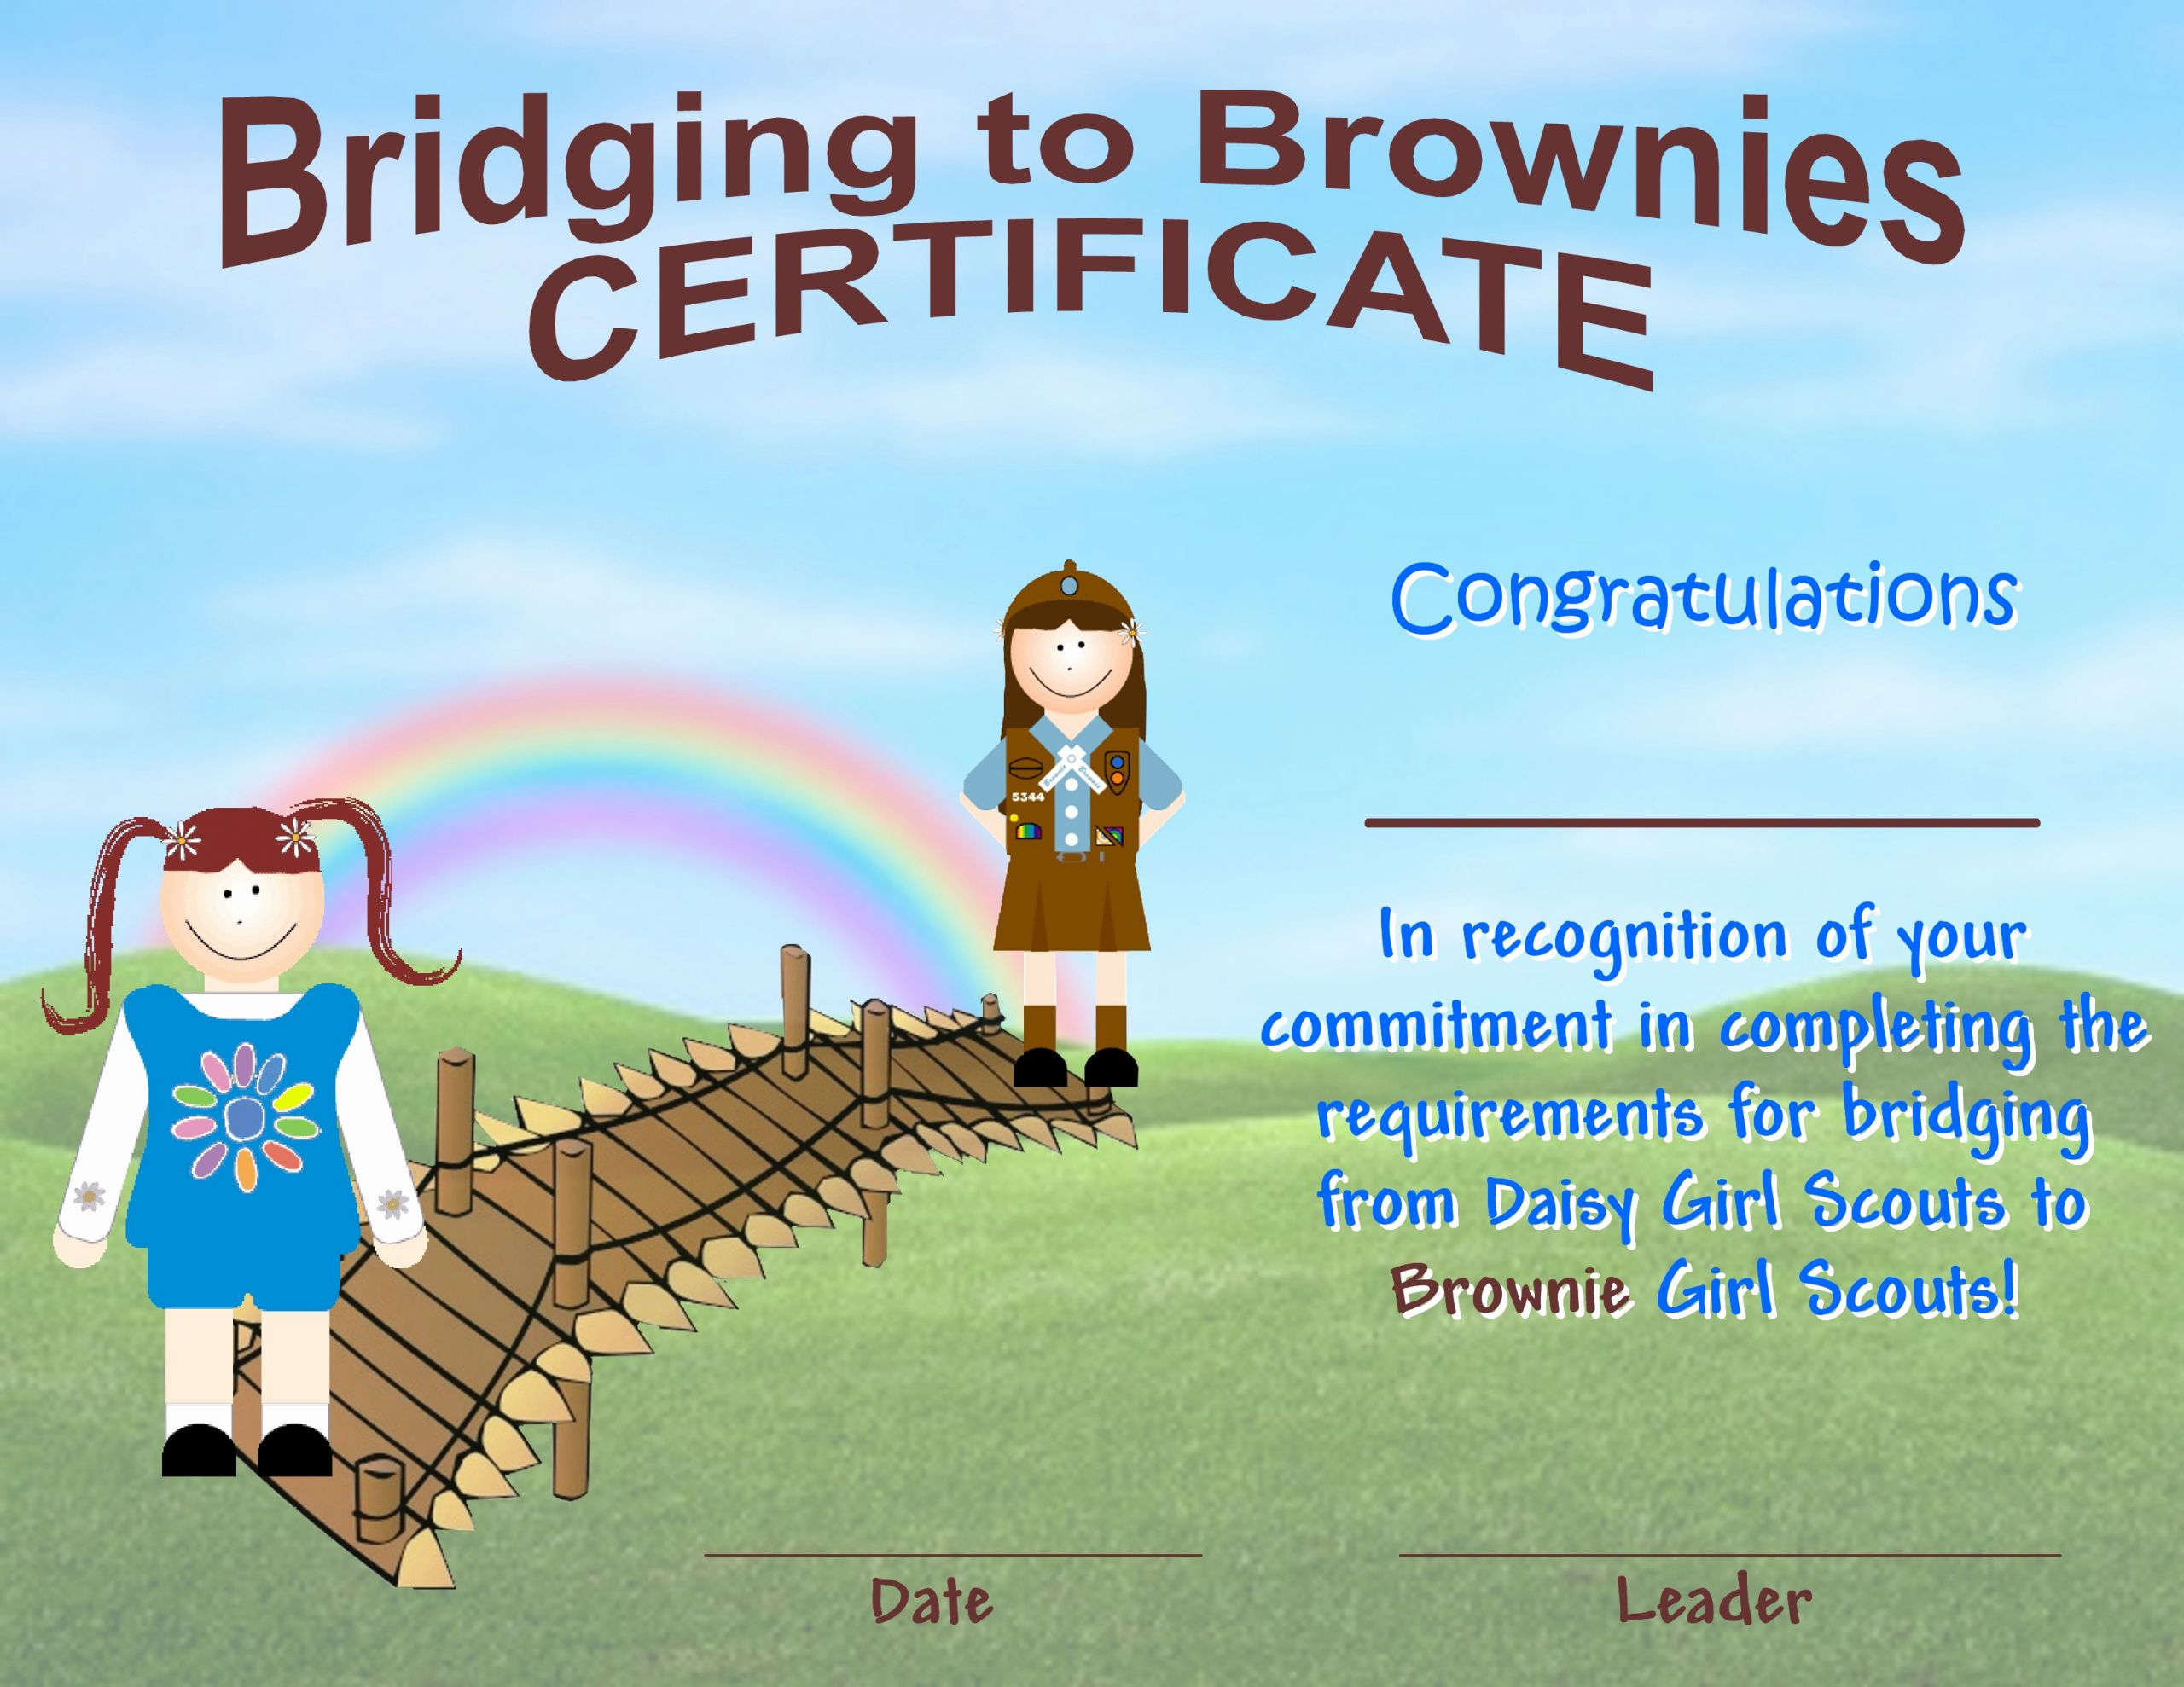 Girl Scout Daisy Certificate Template Fresh Bridging to Brownies Certificate Girlscouts